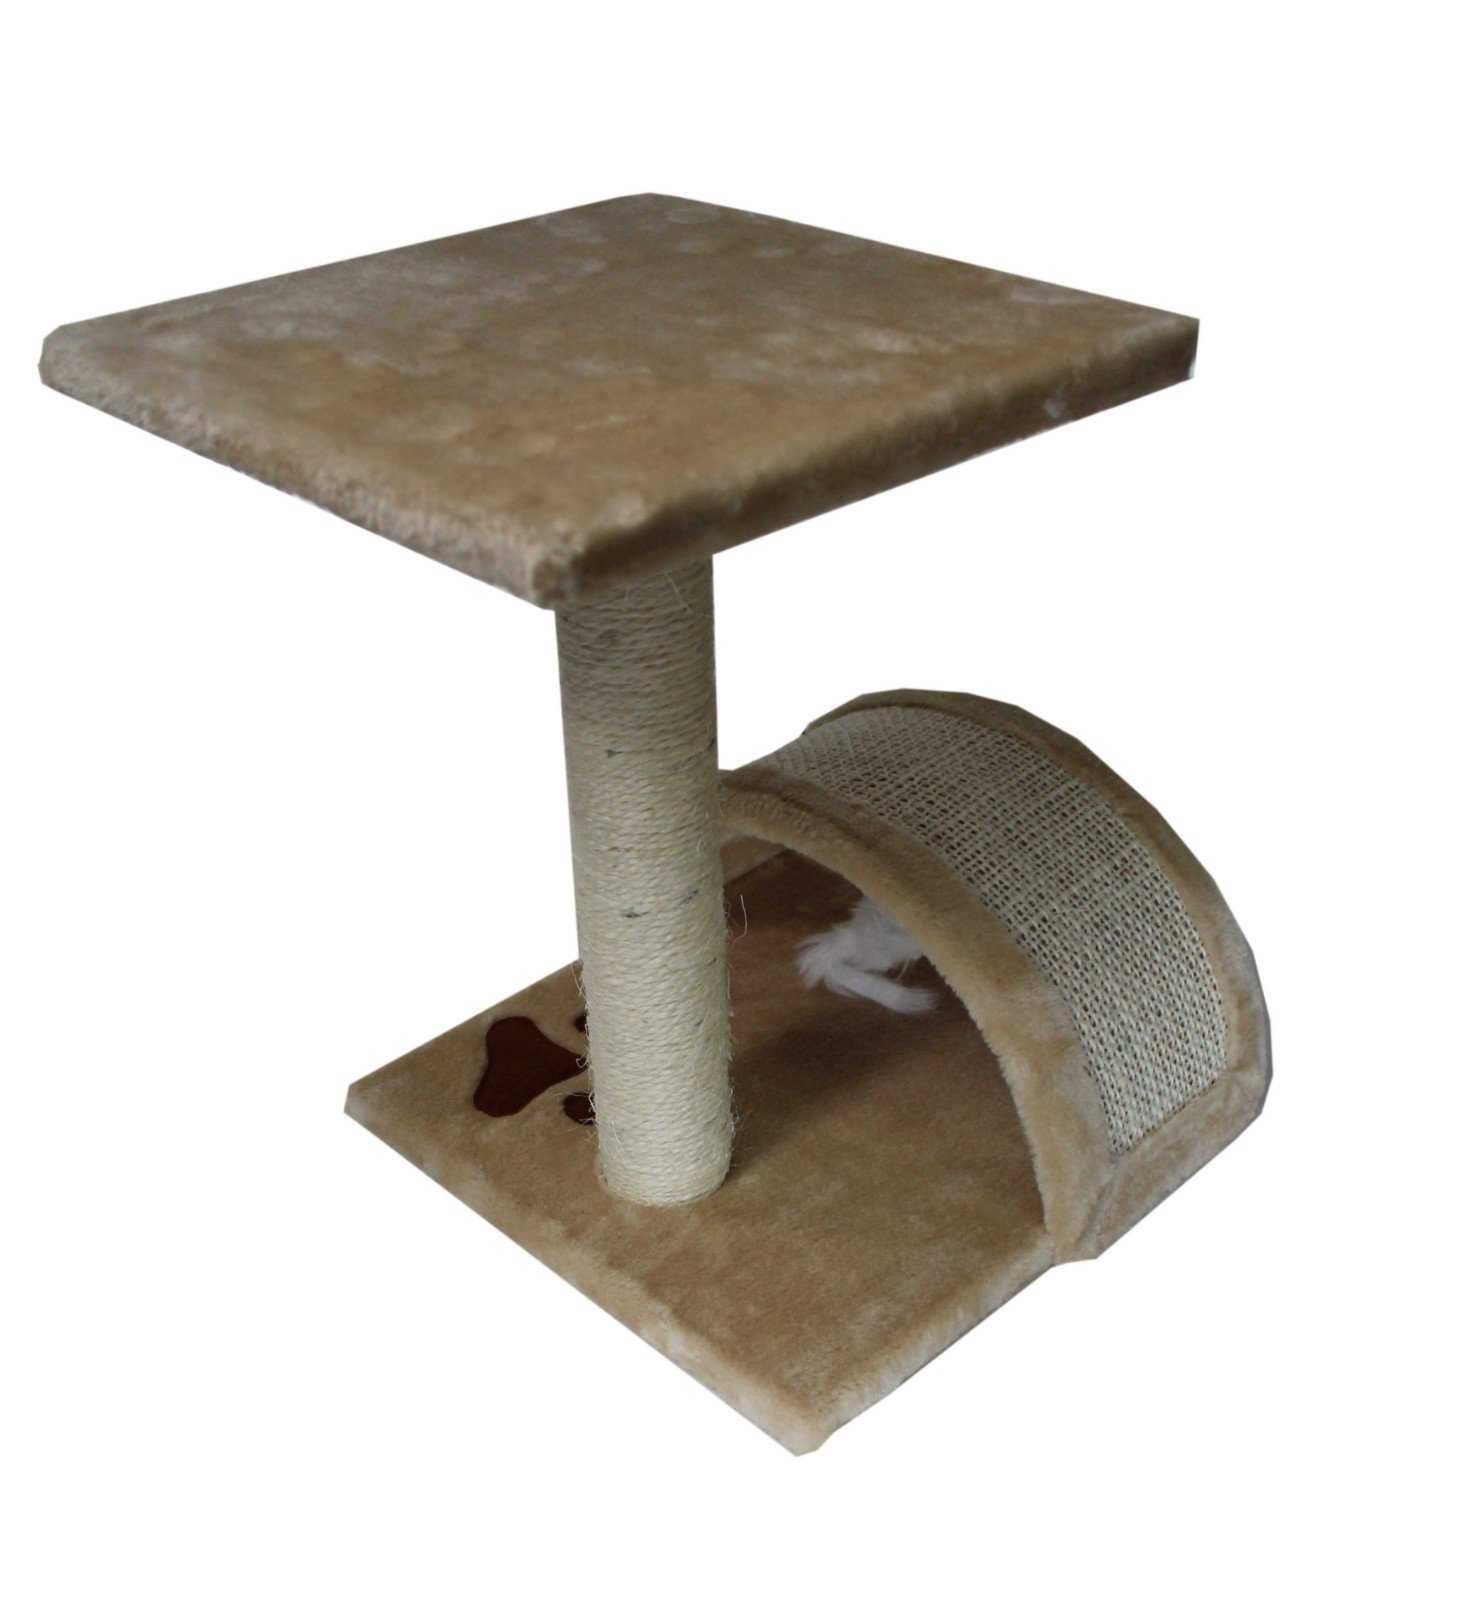 15'' High Small Cat Tree Sisal Scratching Post Furniture Playhouse Pet Bed Kitten Toy Cat Tower Condo for Kittens (Beige) by HIDING